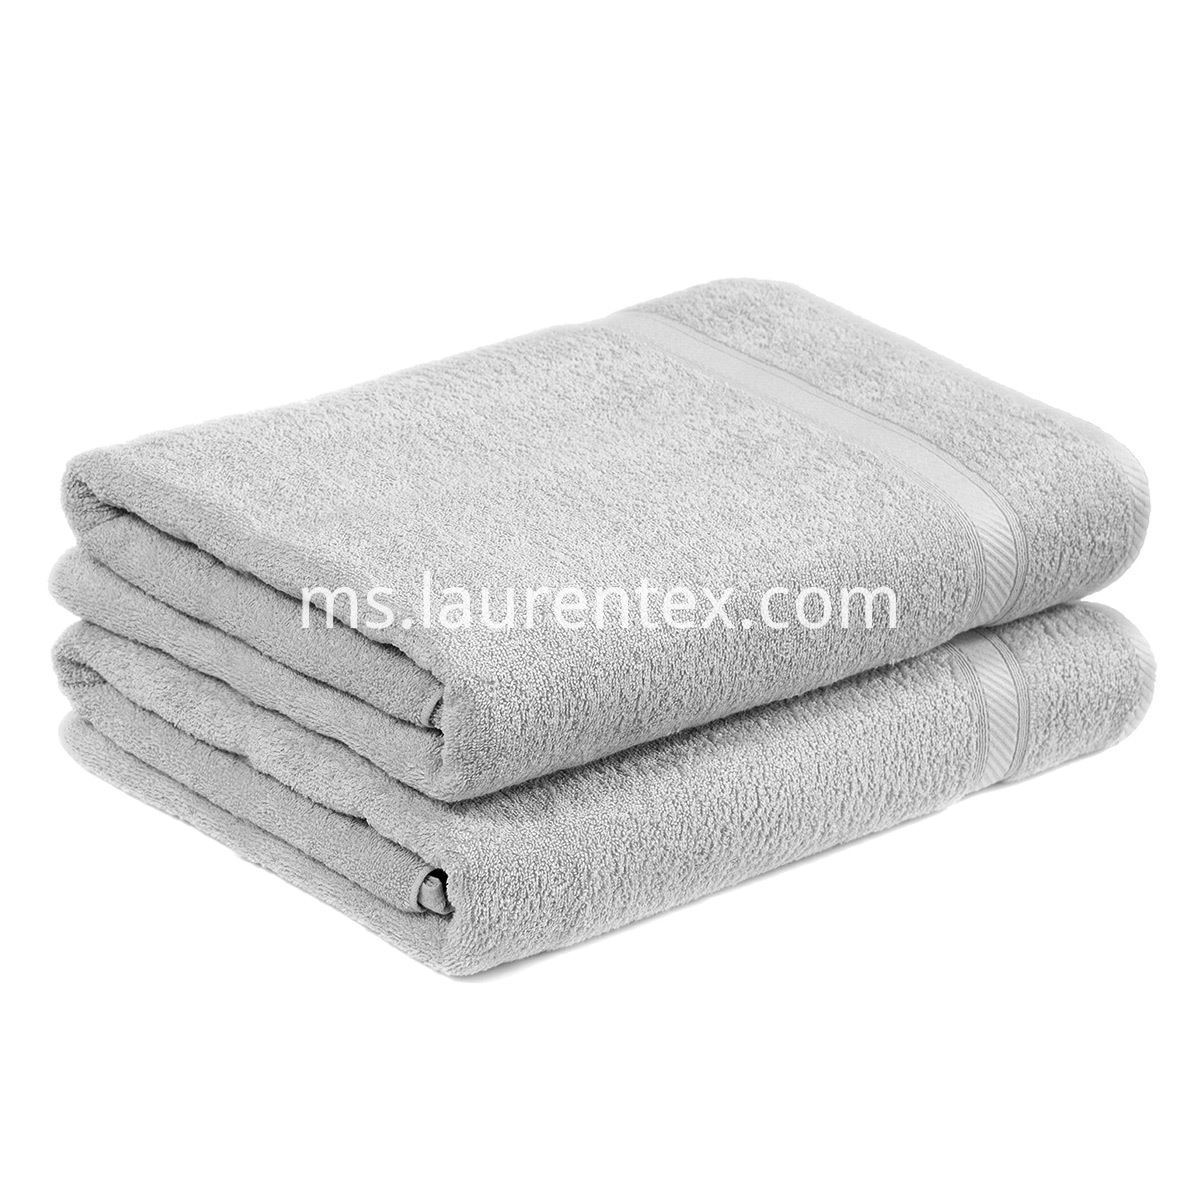 0006136_bath-towel